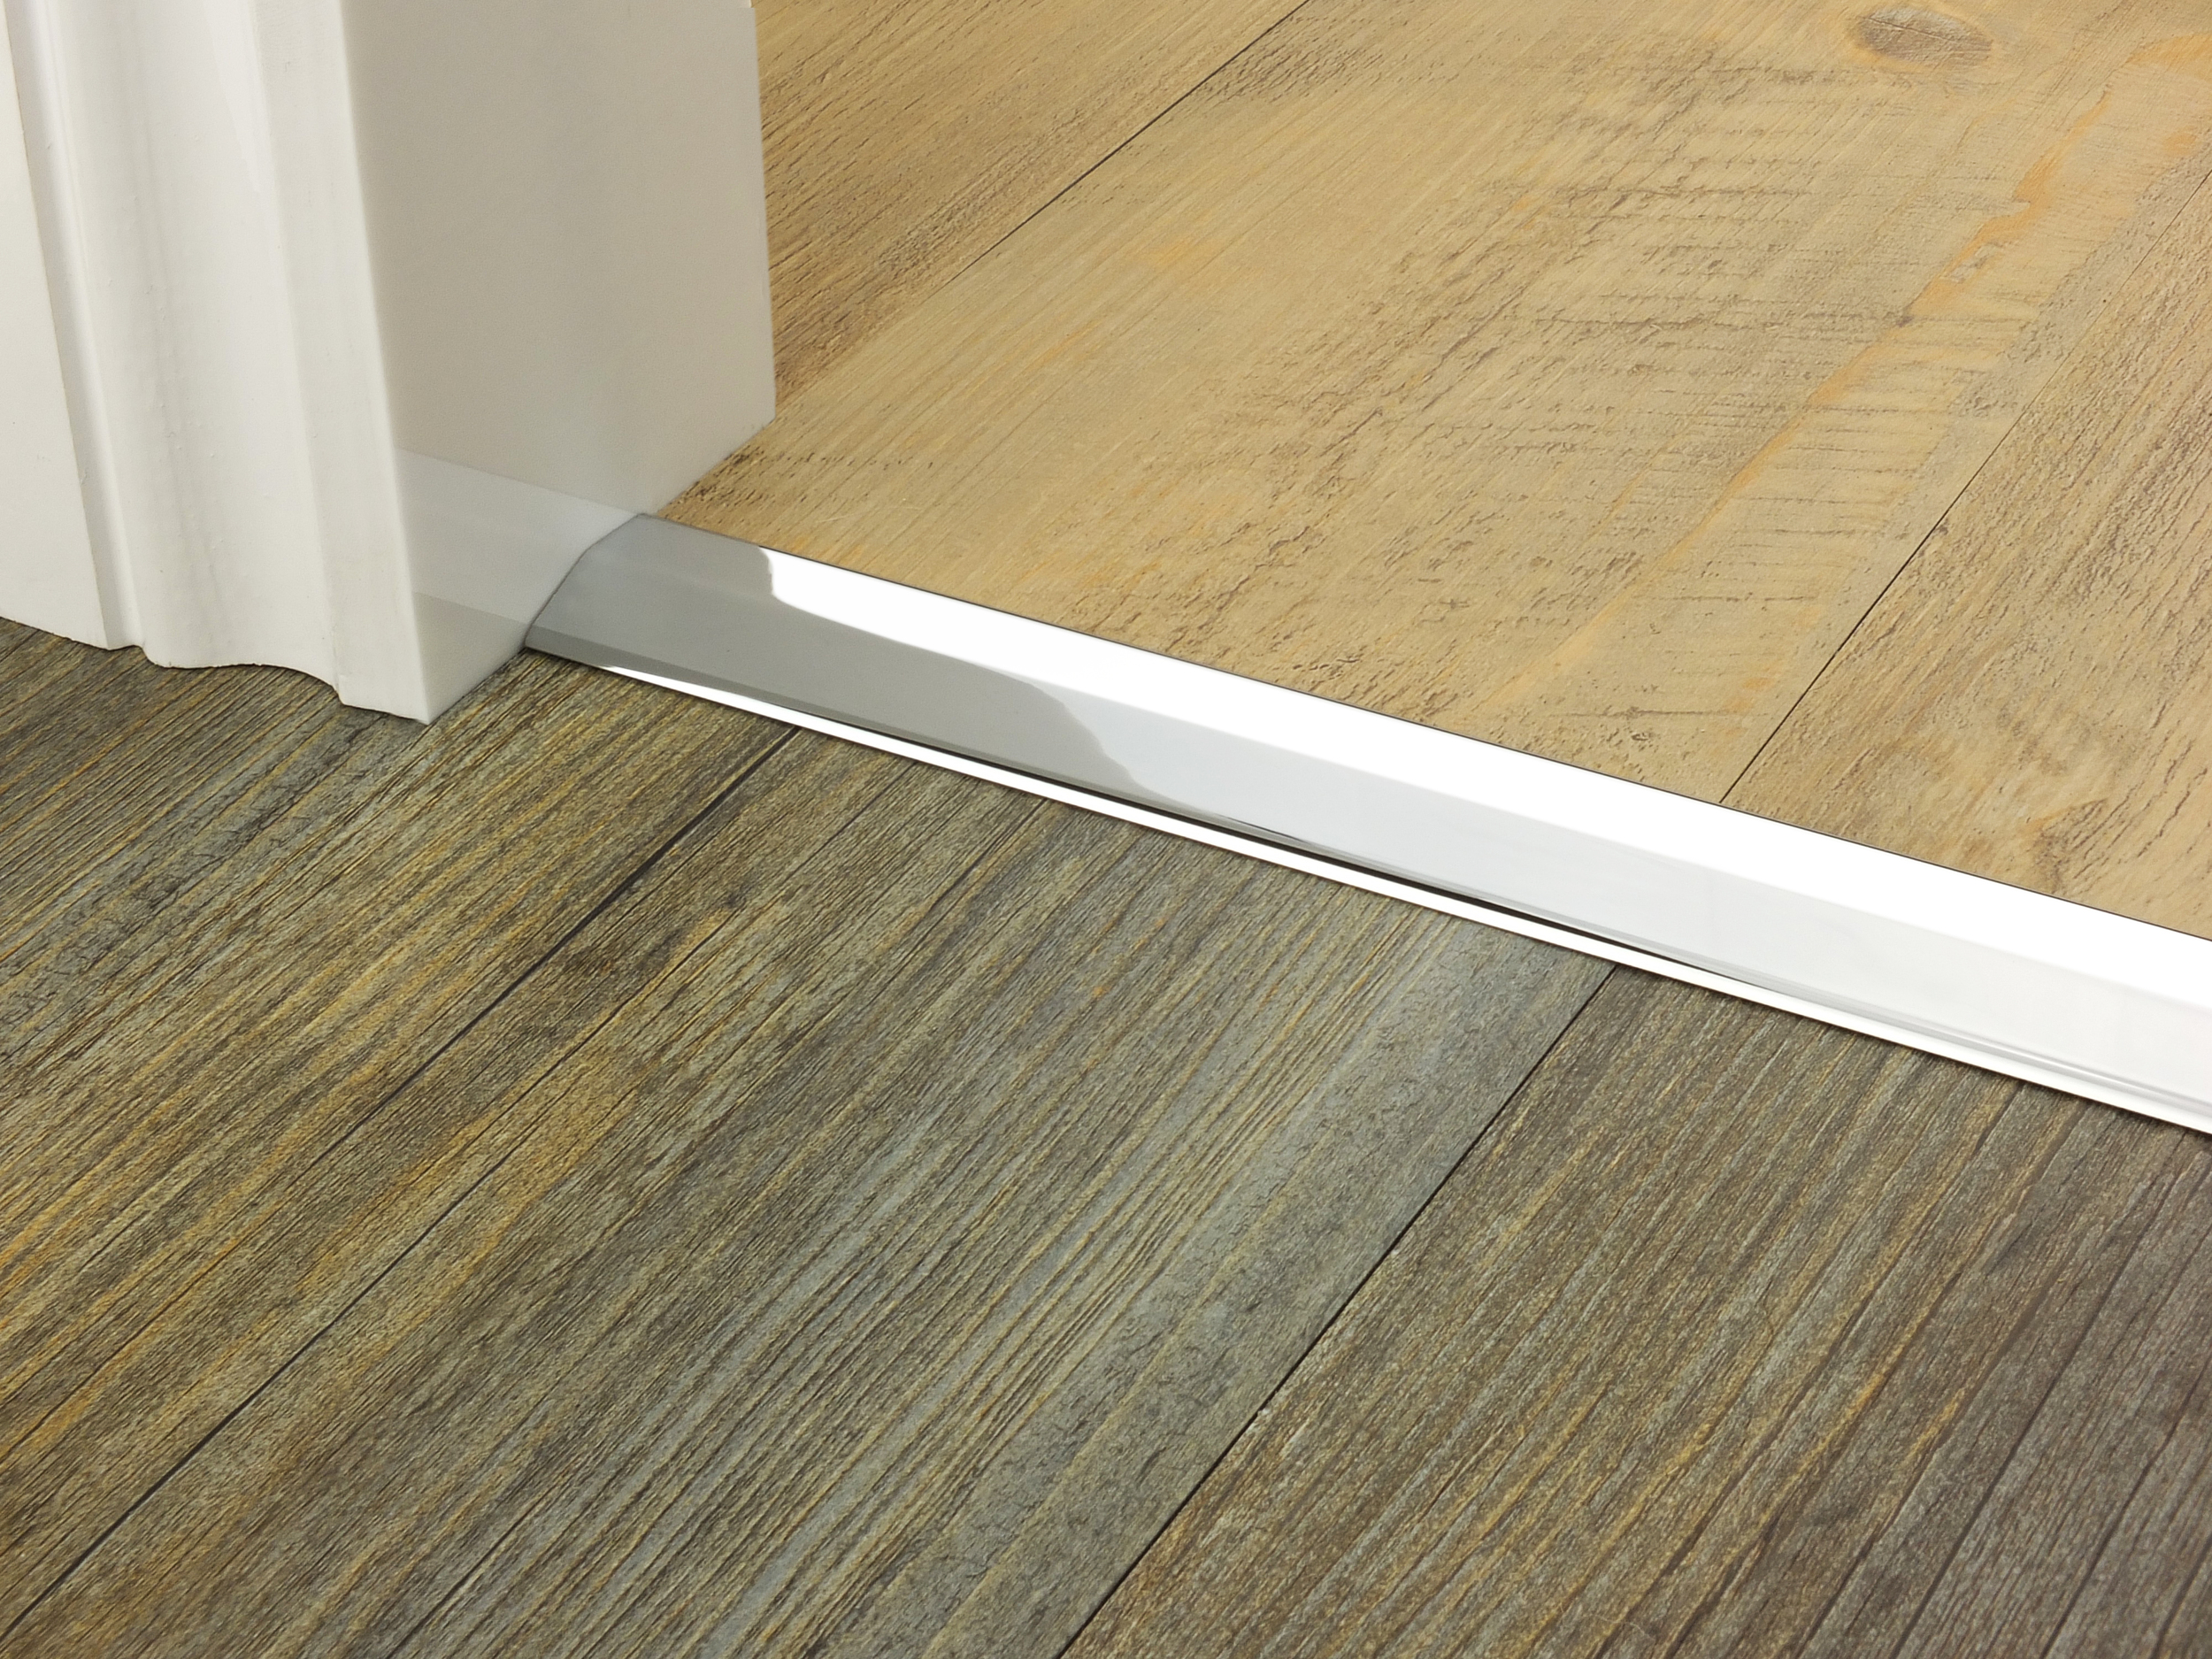 door_bar_two_way_ramp_chrome_5mm_lvt_lvt.jpg